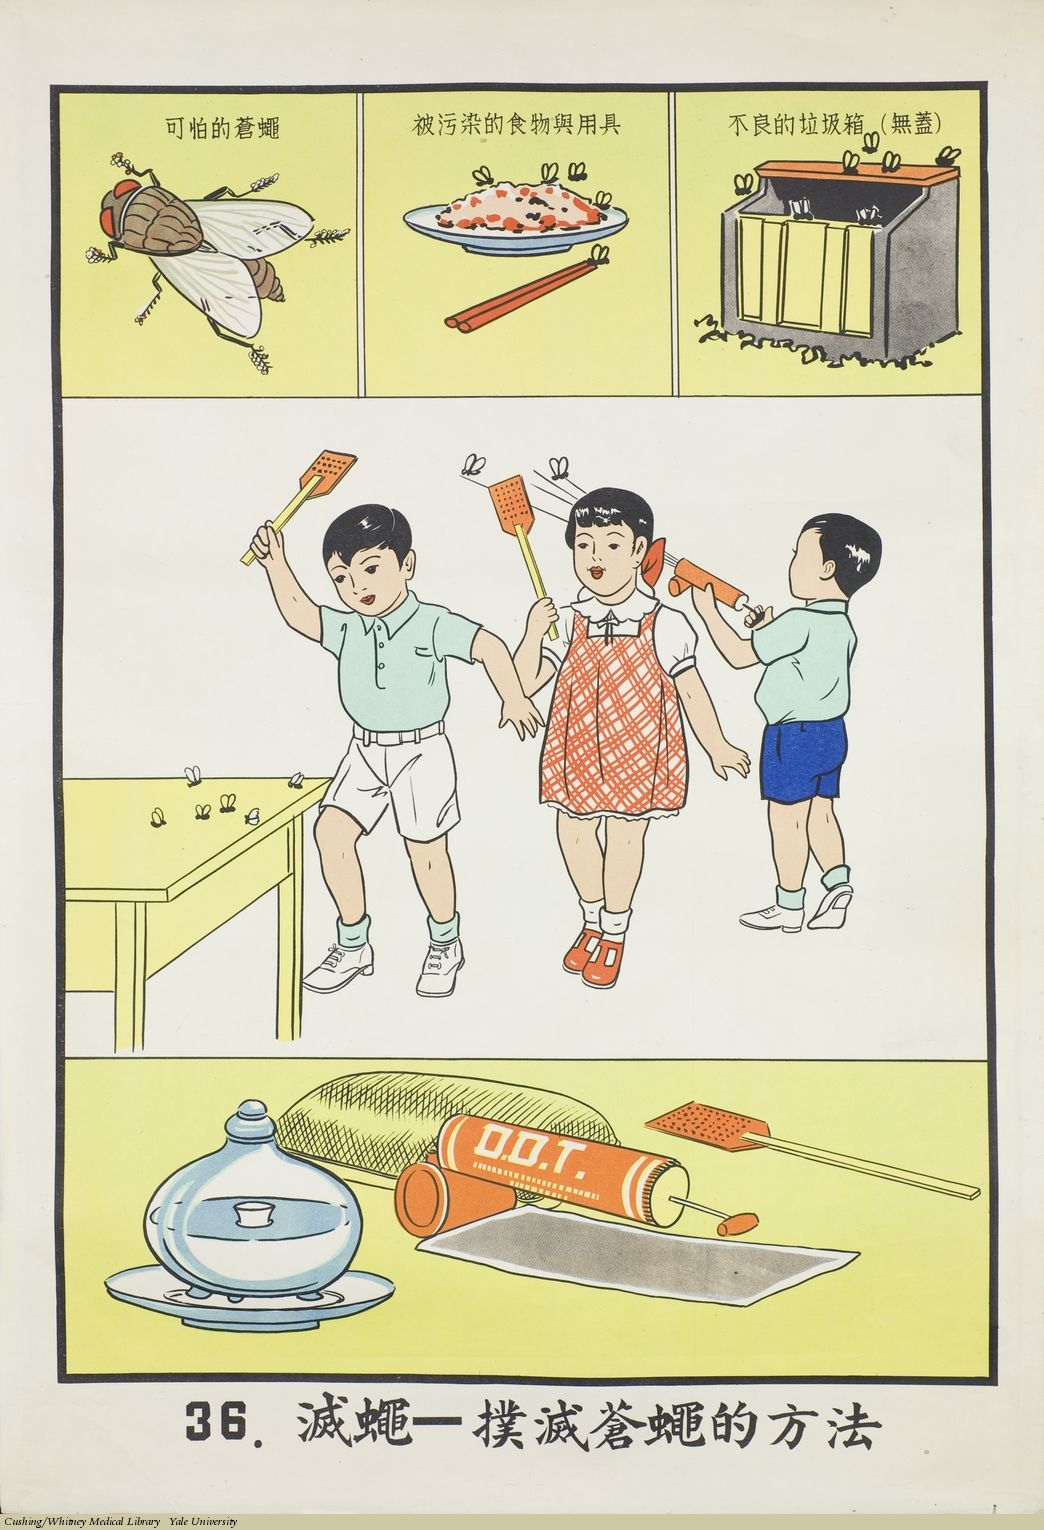 Public Health Poster, Taiwan, 1959. | Diagramatic | Pinterest ...